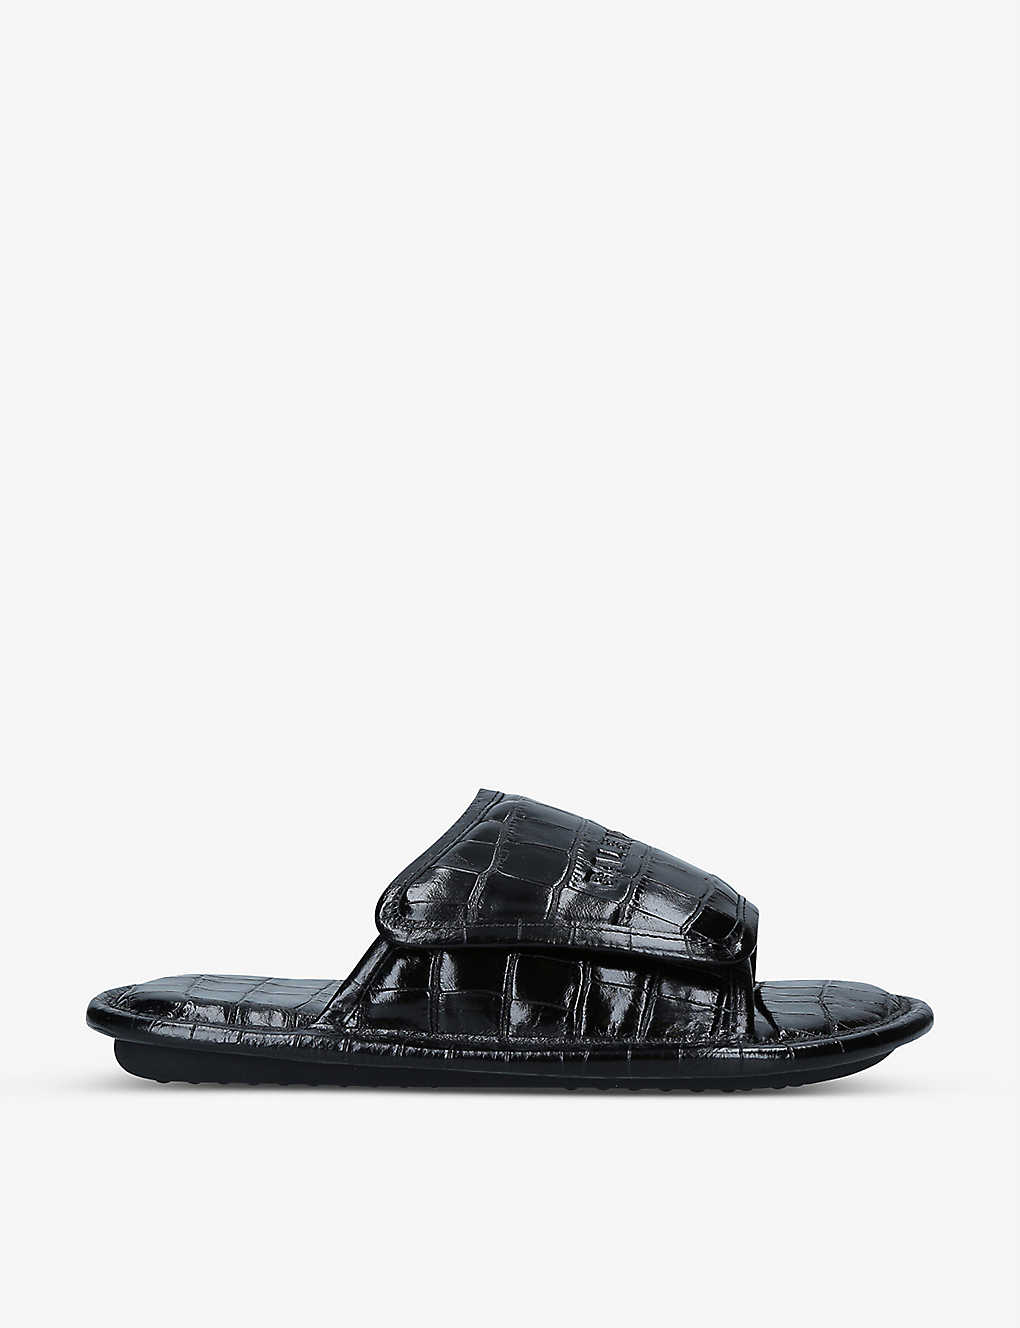 Balenciaga Leathers HOME LOGO AND CROCODILE-EMBOSSED LEATHER SLIDER SANDALS